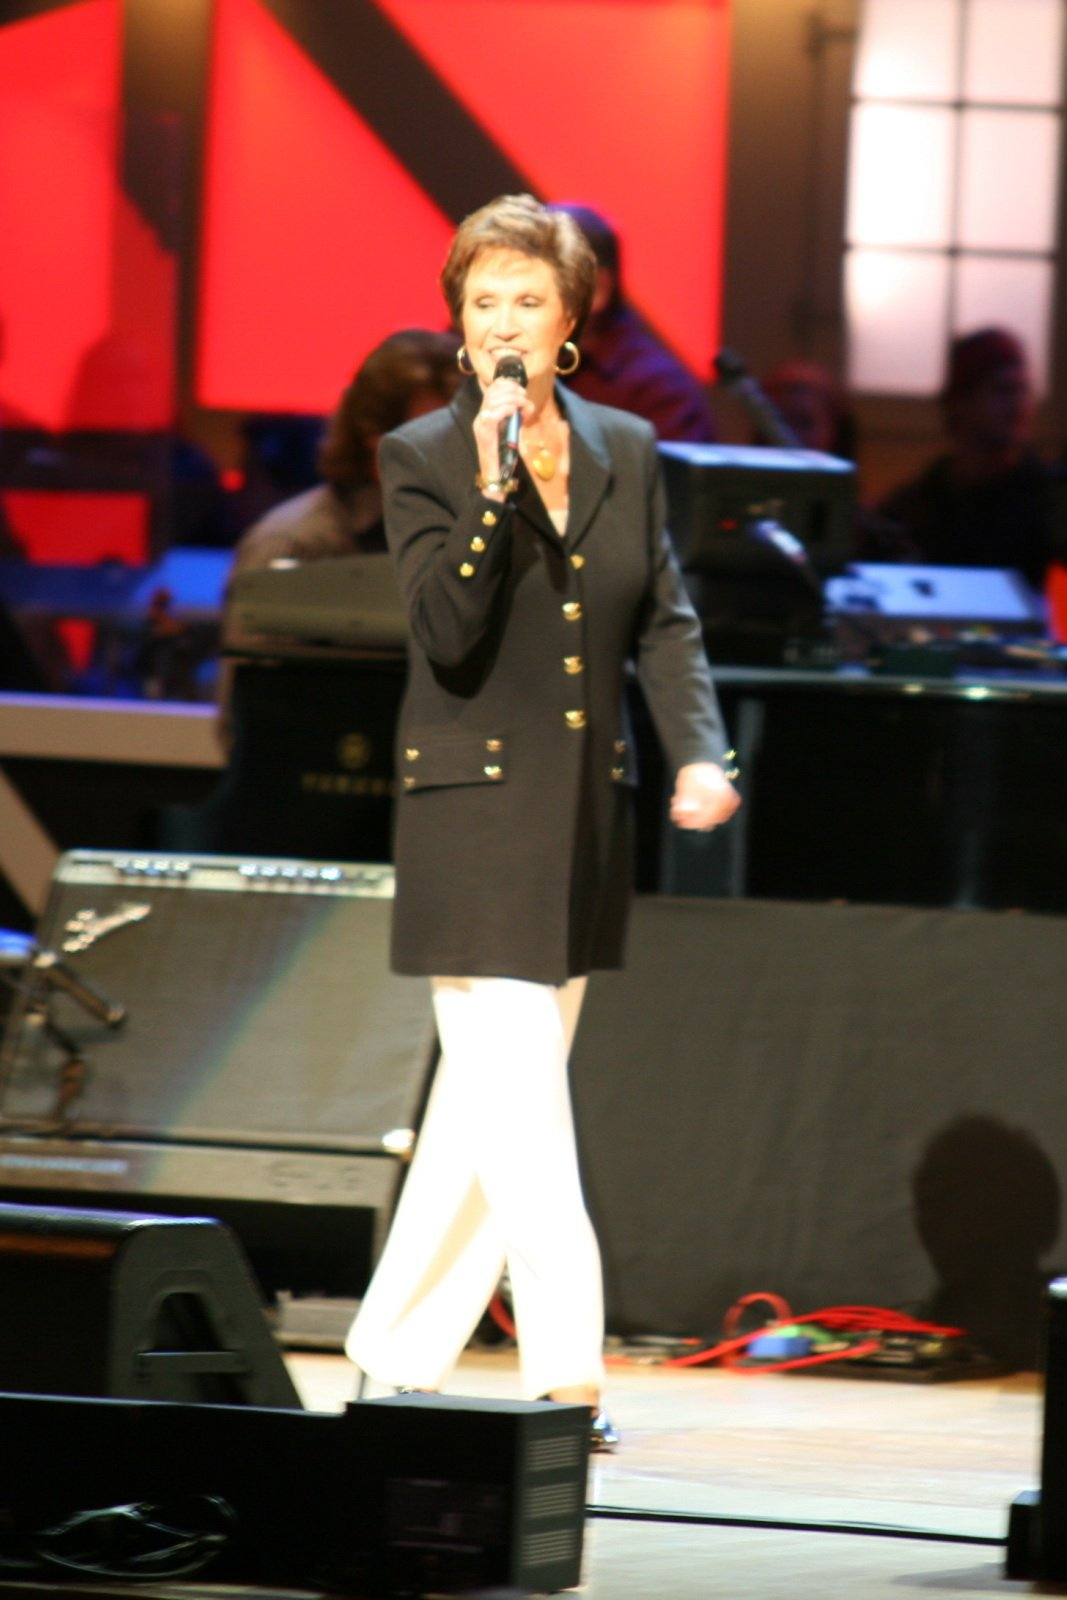 Jan Howard at Grand Ole Opry on May 18, 2007 | Photo: Wikimedia/Albert Herring